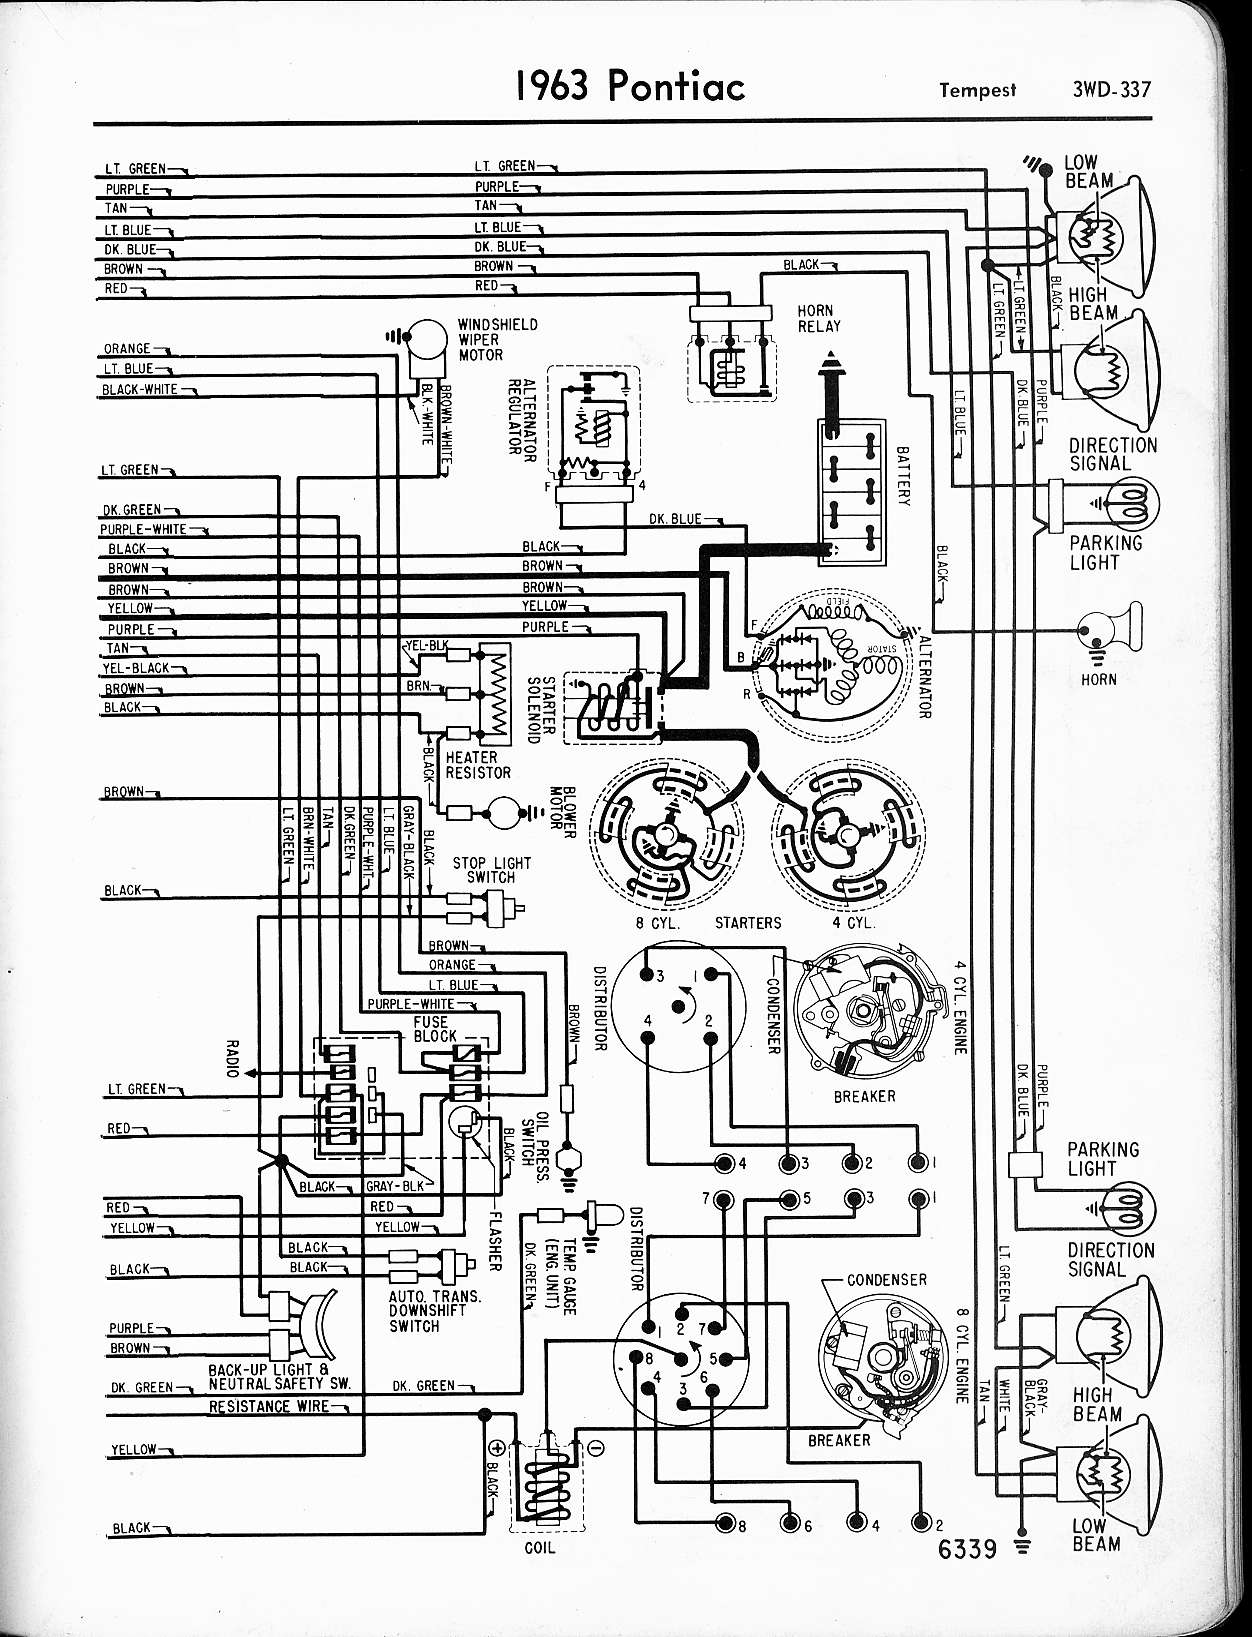 64 Impala Drawing At Free For Personal Use Chevy Pickup Wiring Diagram 1252x1637 1970 Gto Fuse Box